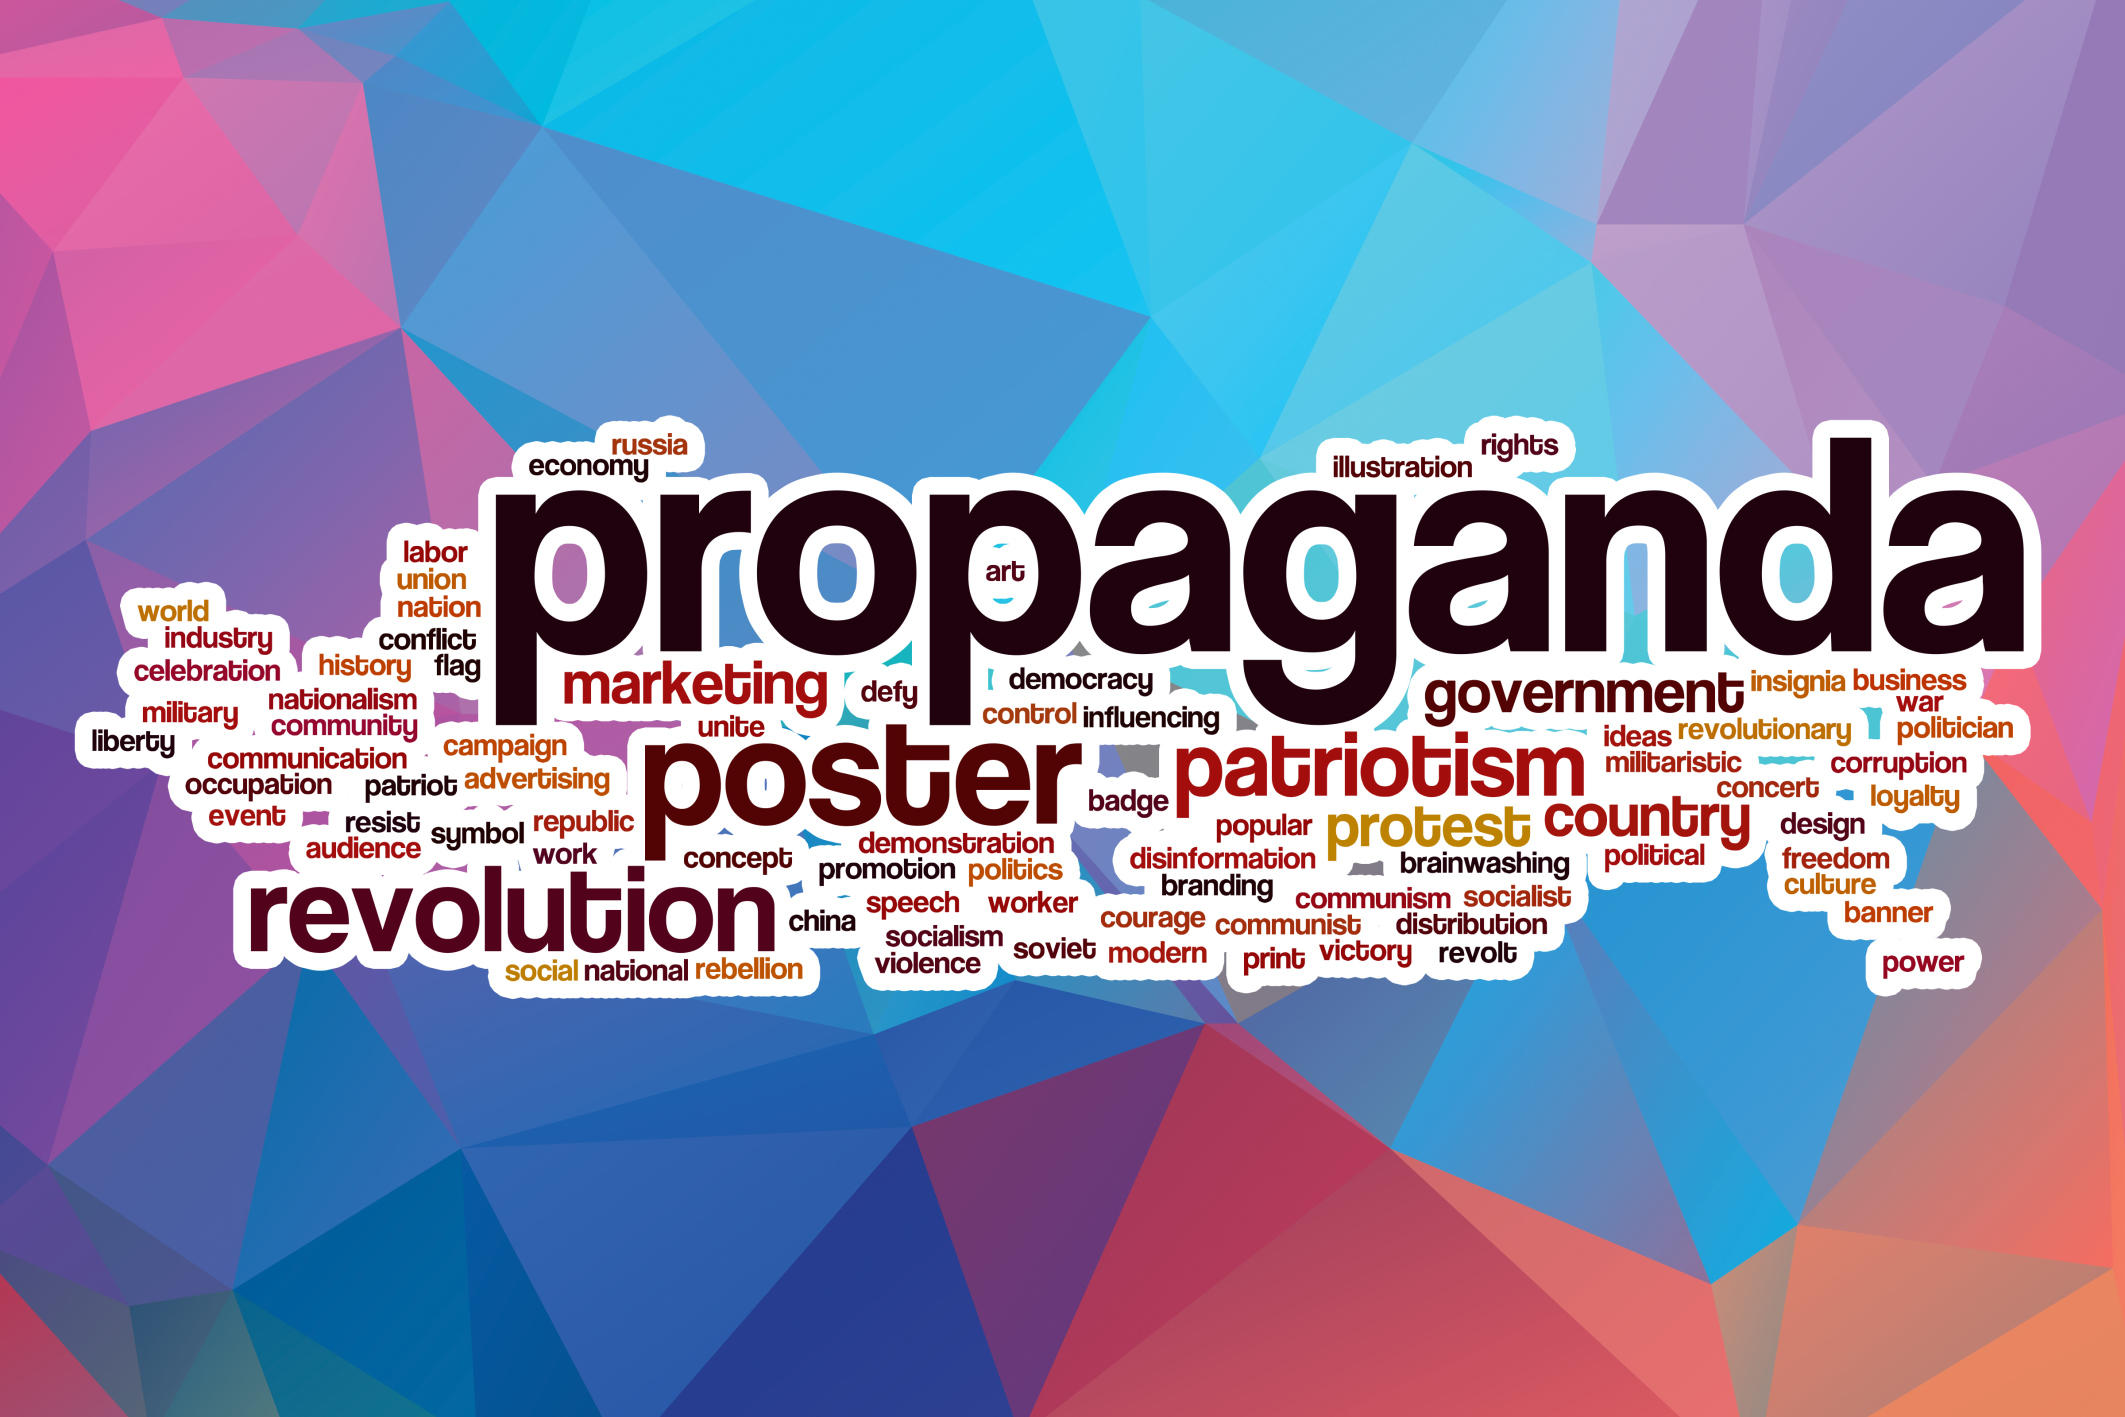 propaganda_word_cloud.jpg